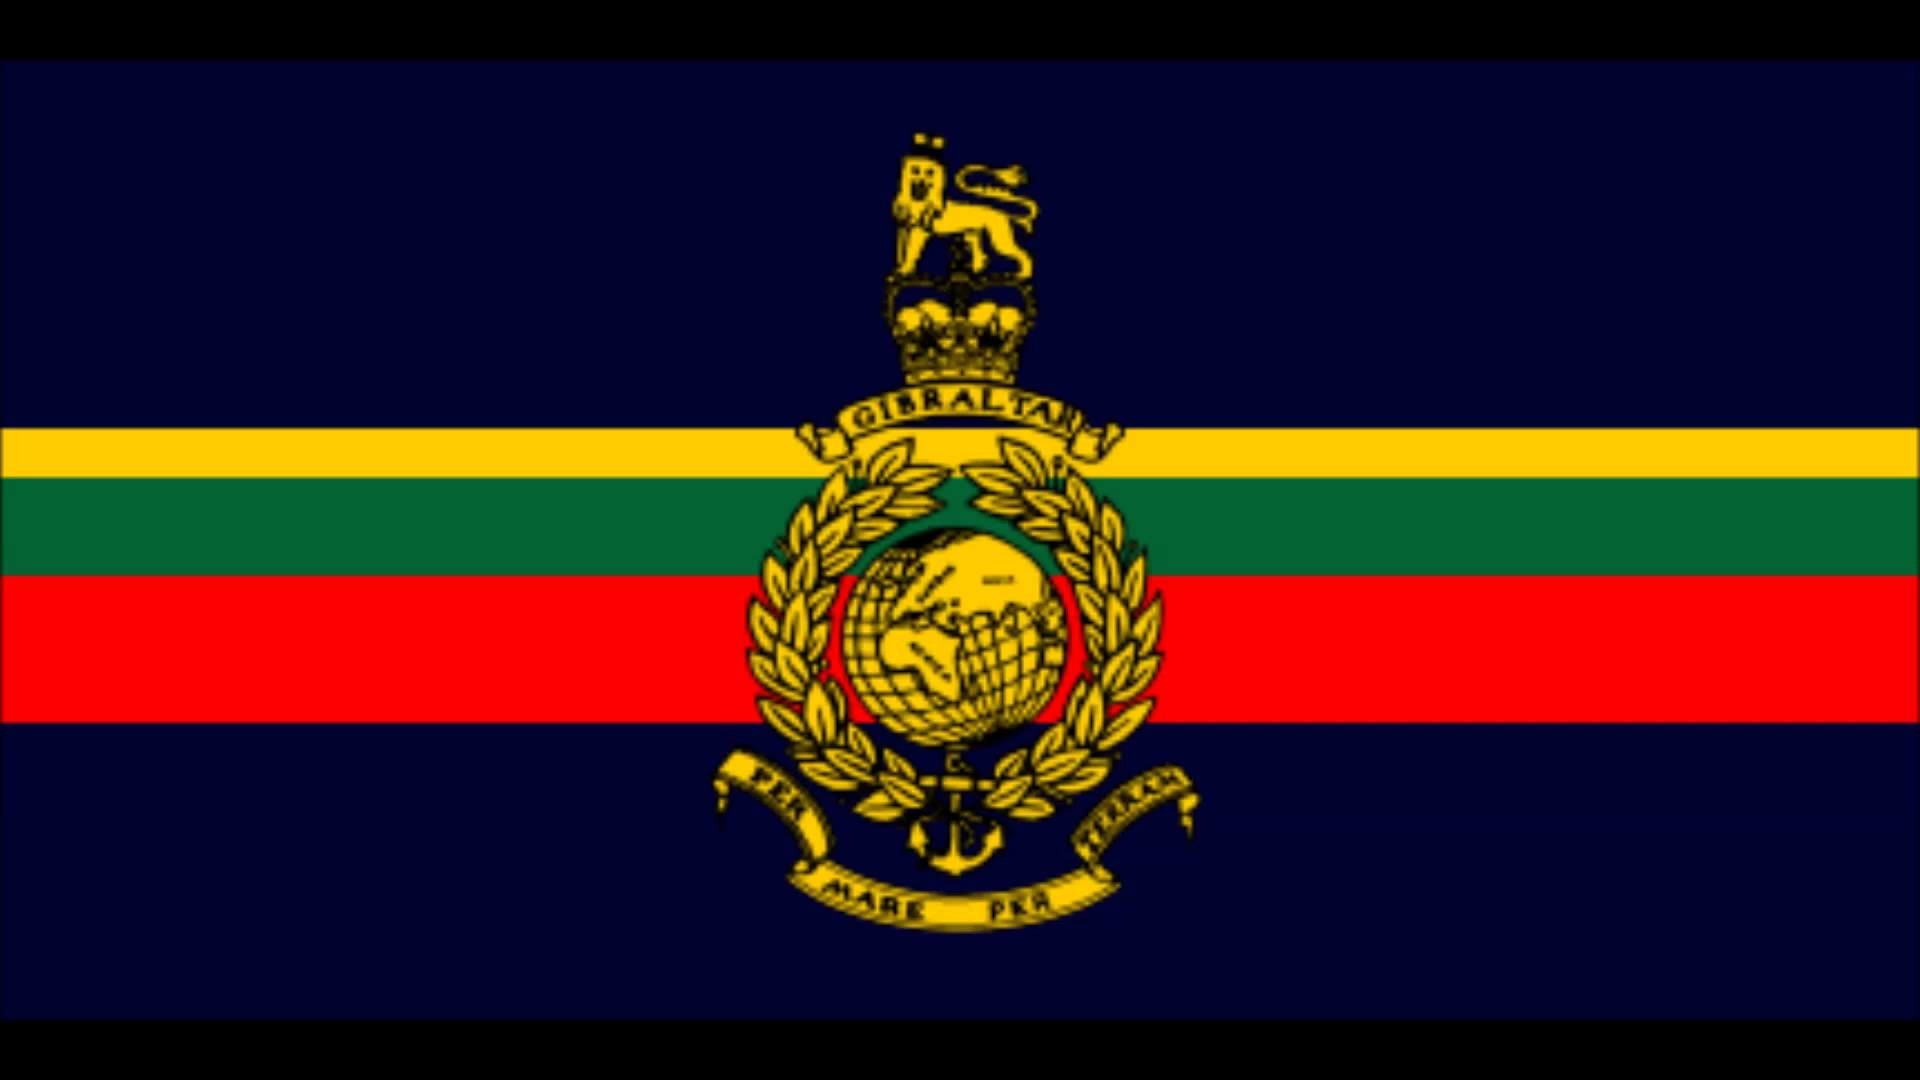 1920x1080 royal marines wallpaper #408975